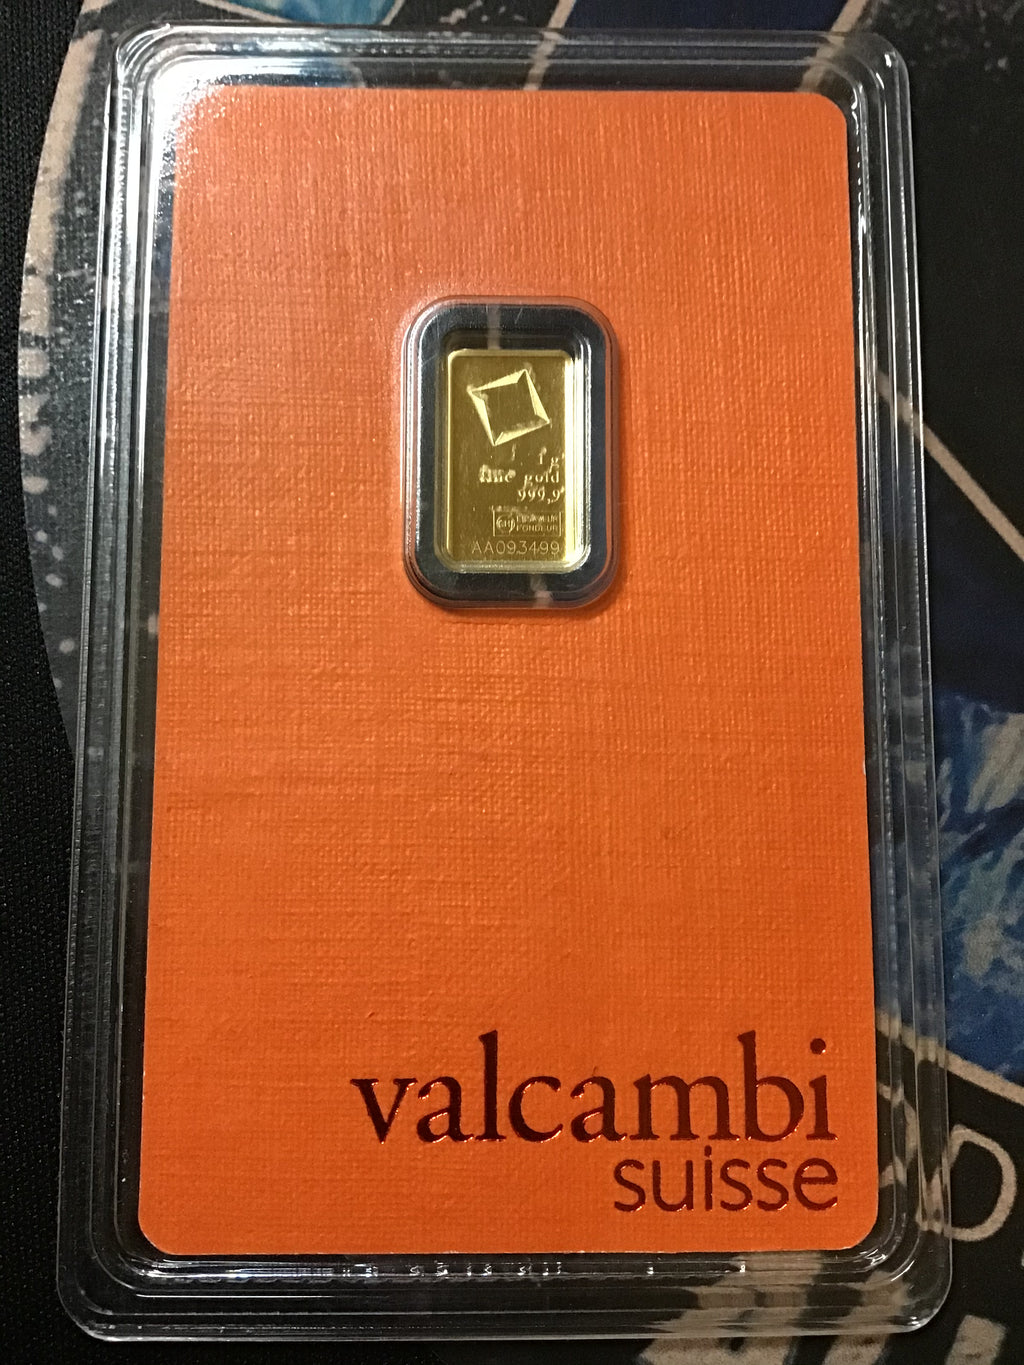 Valcambi 1 Gram Sealed Gold Assay